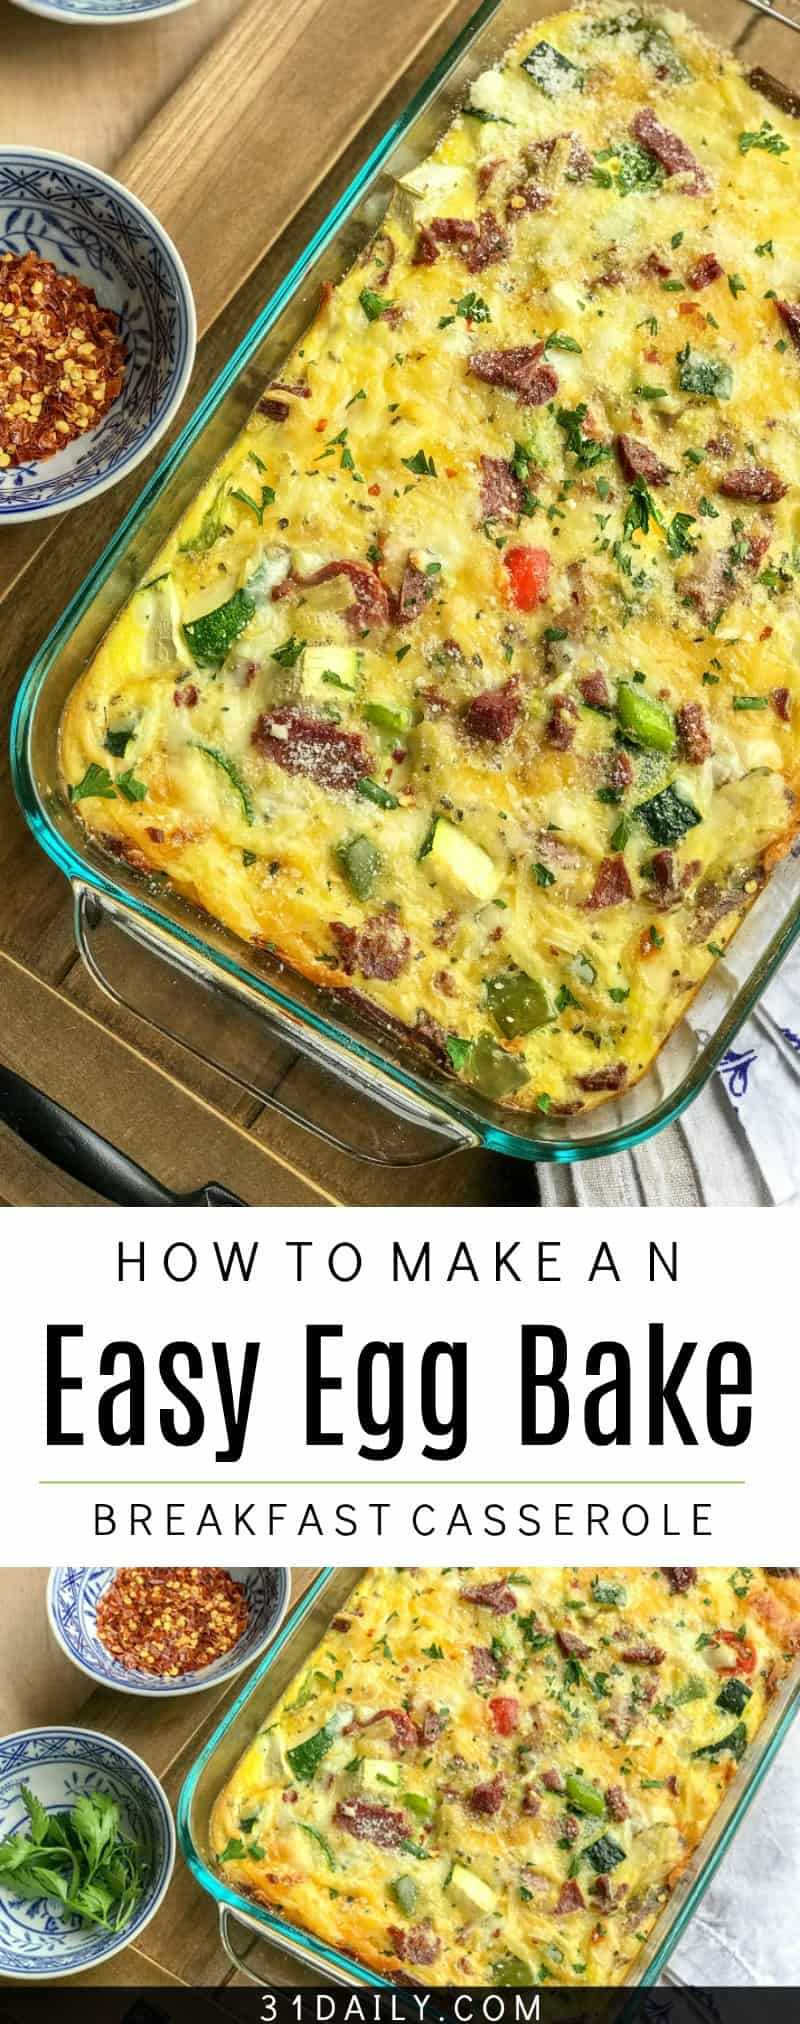 Make Ahead Easy Vegetable Egg Bake Breakfast Casserole | 31Daily.com